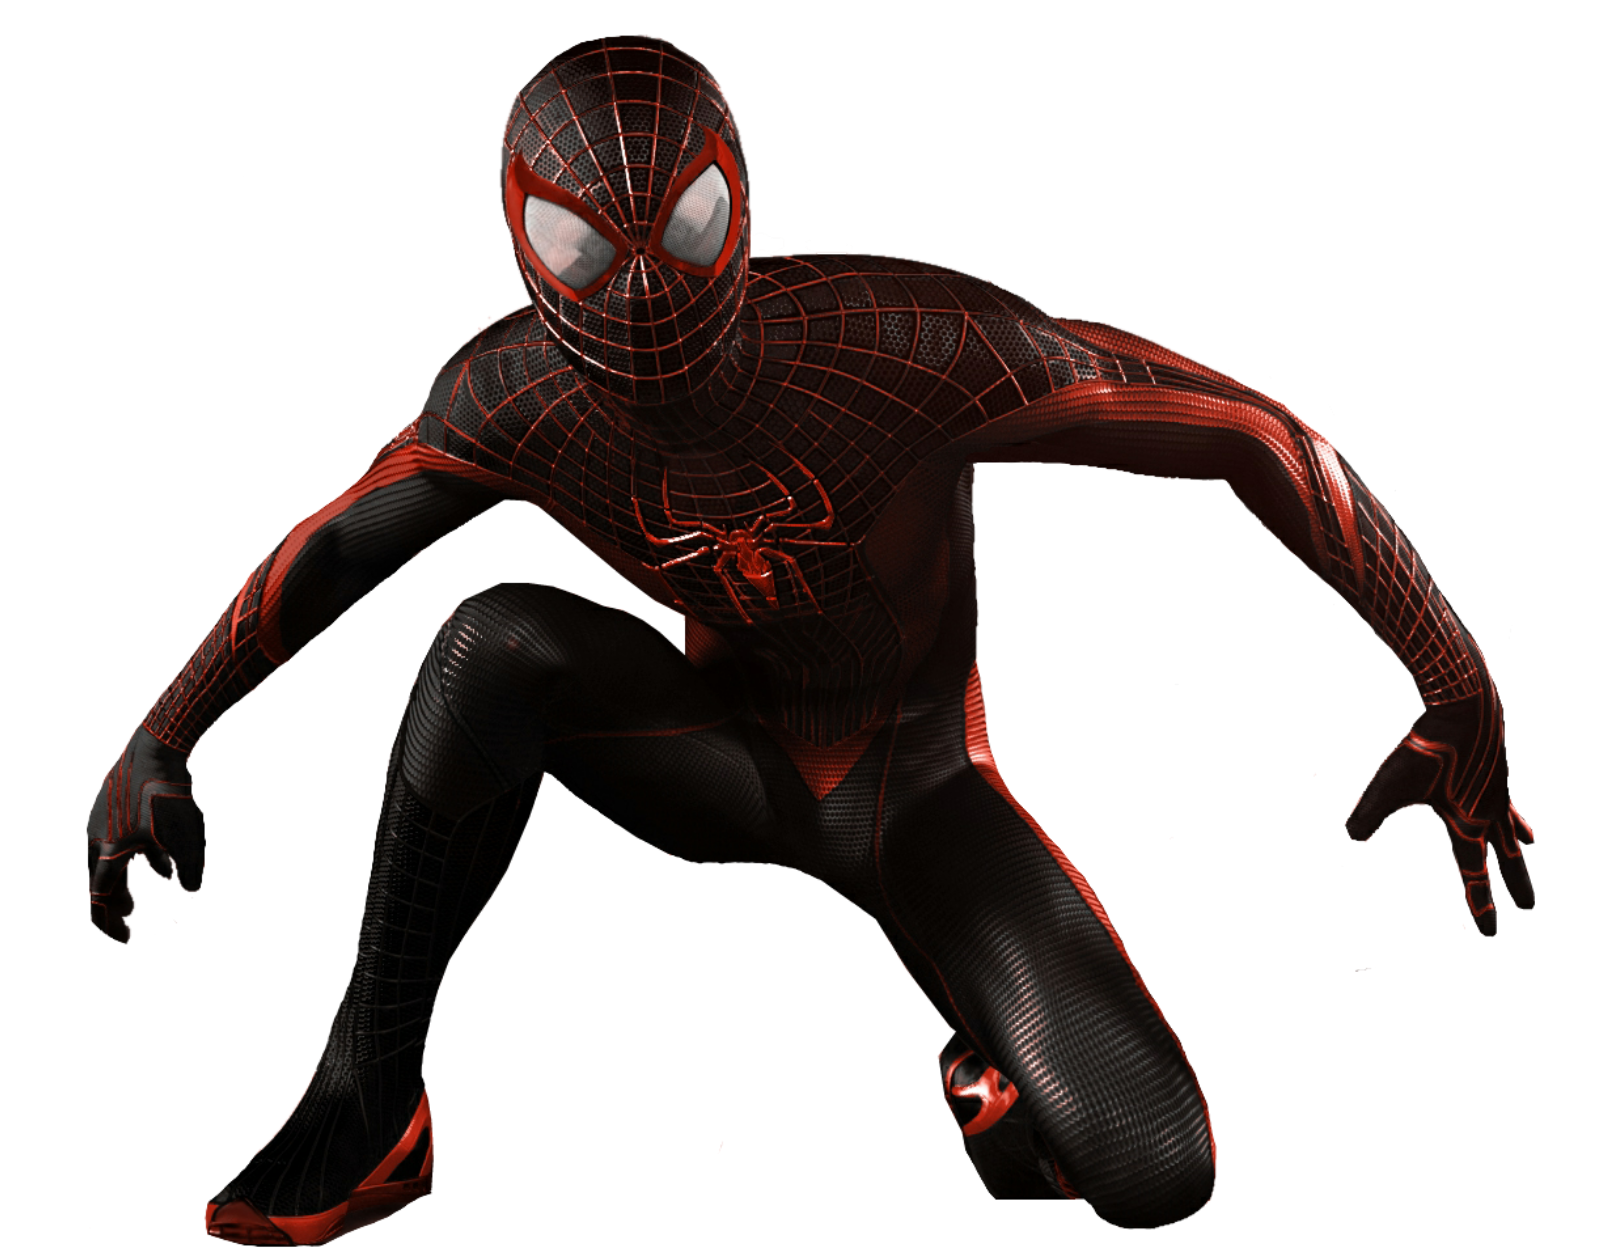 3d spider man transparent - photo #35